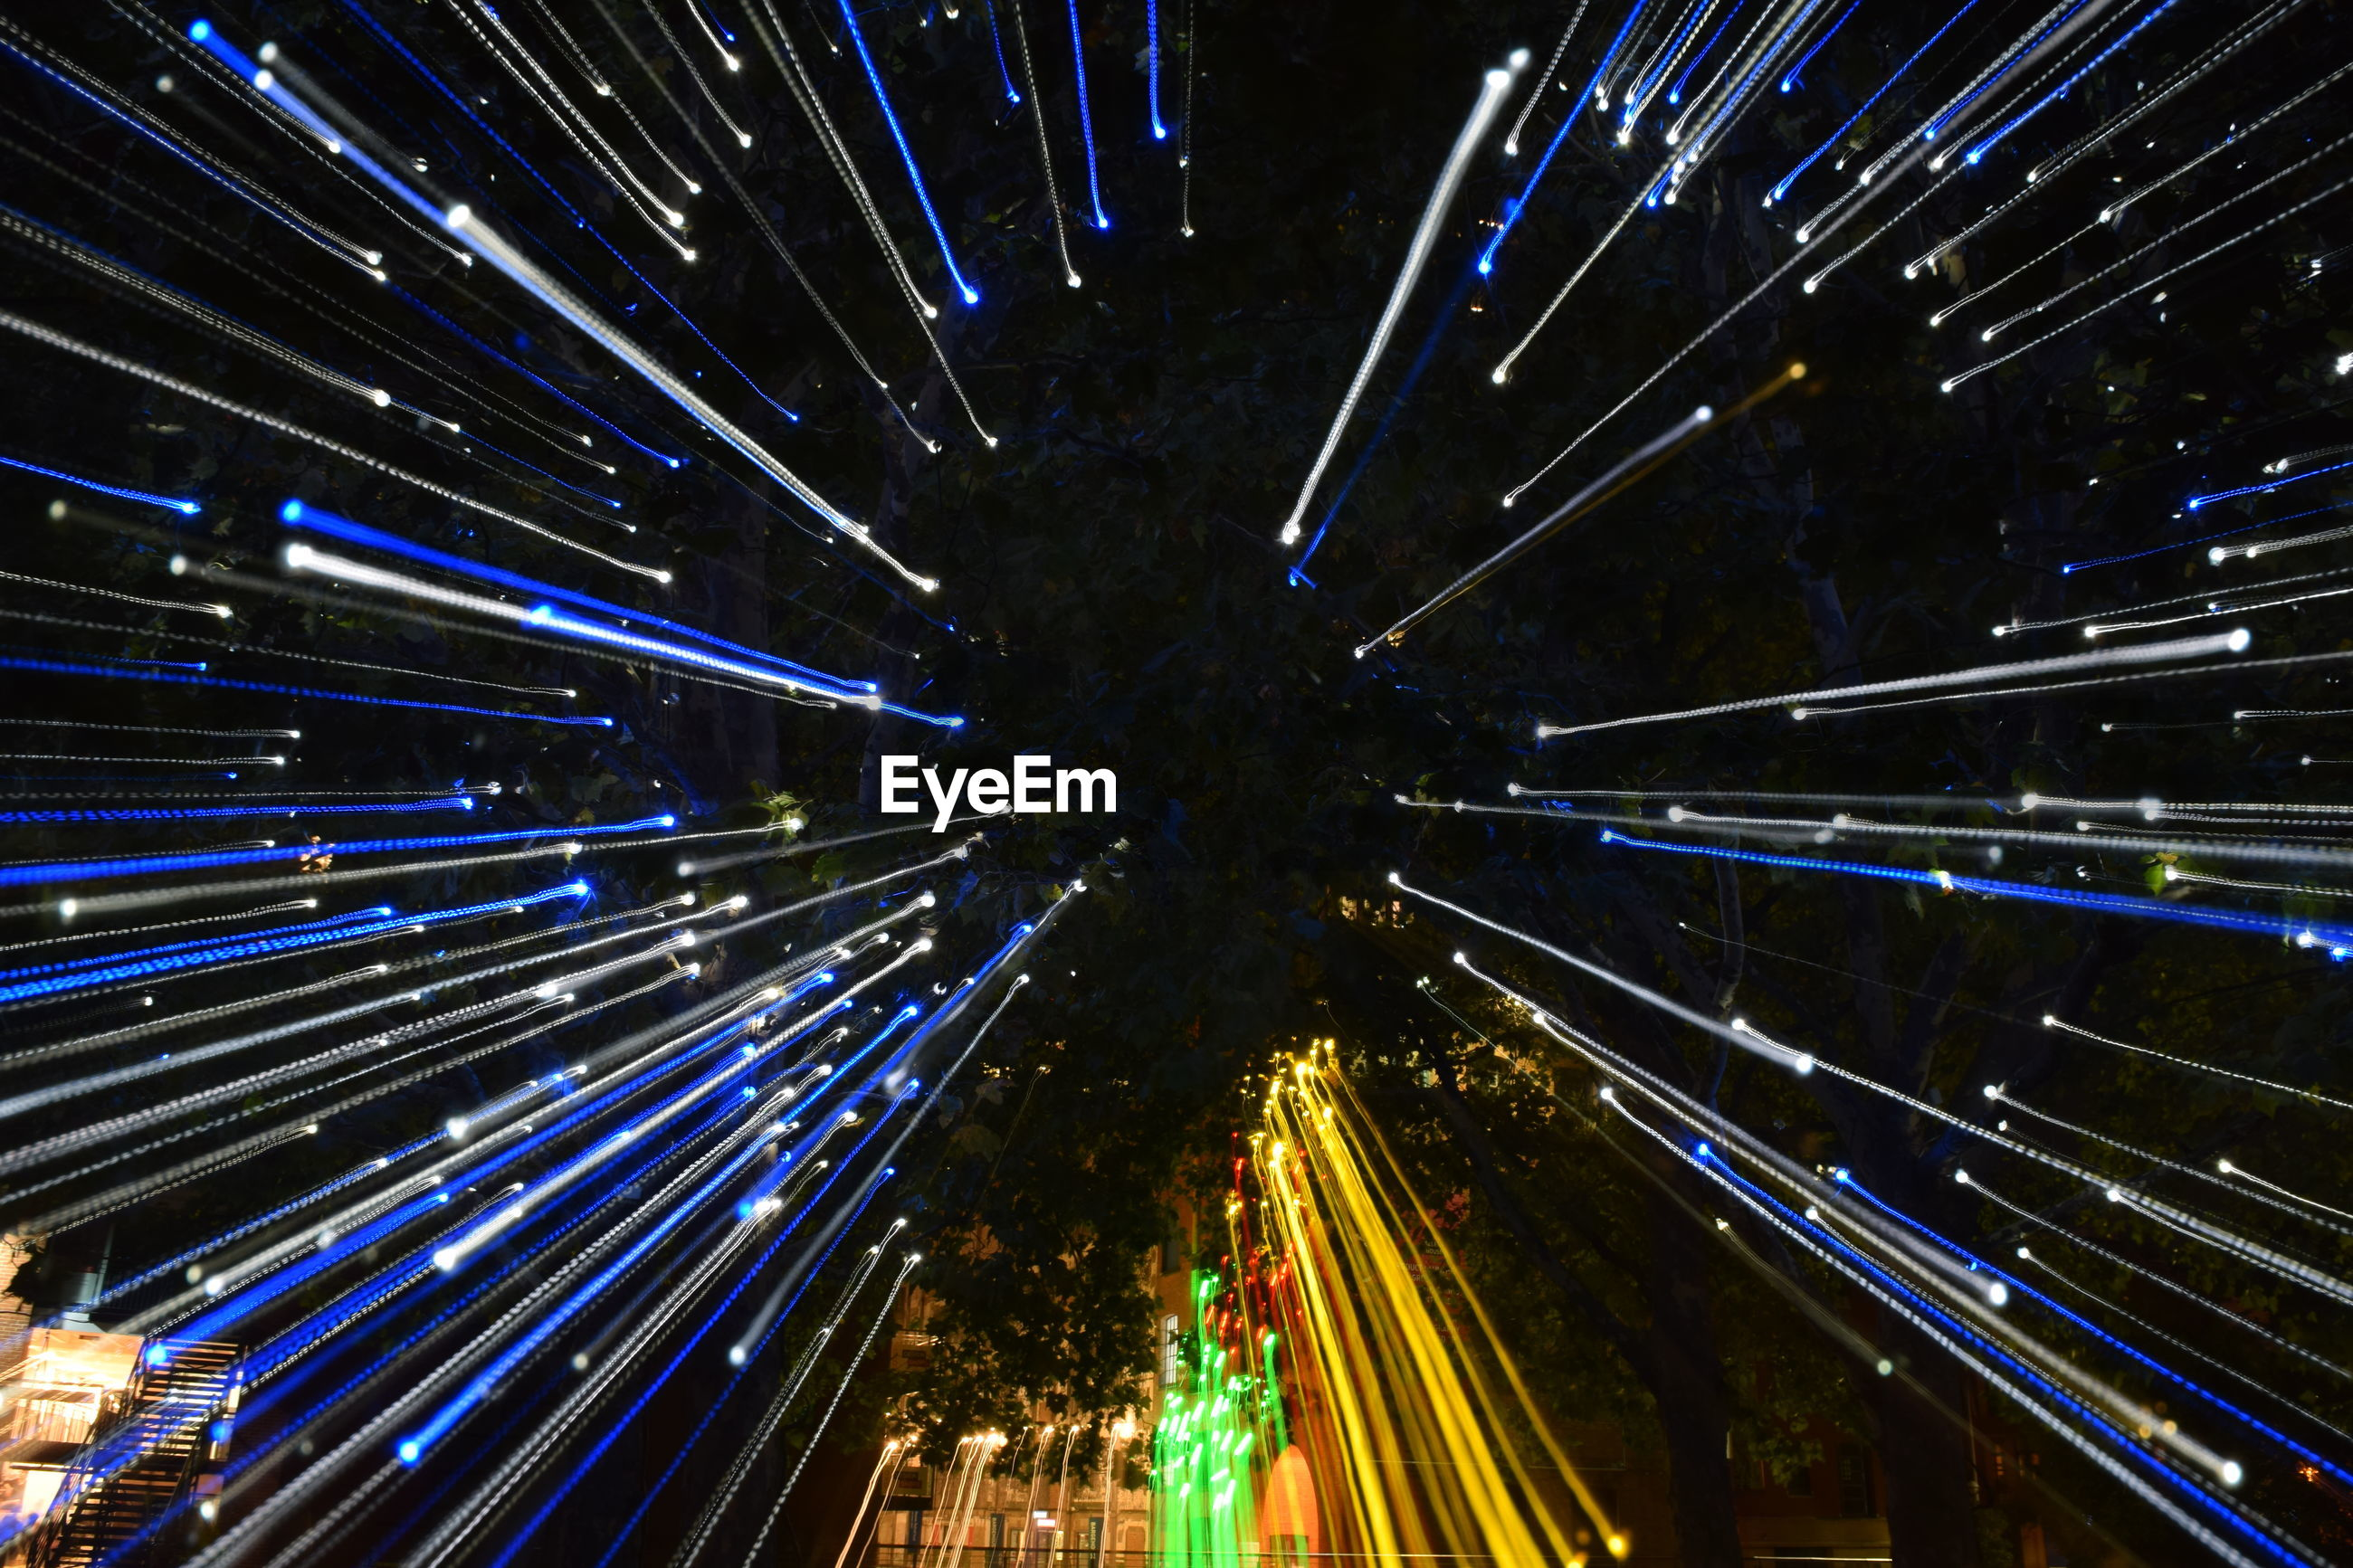 HIGH ANGLE VIEW OF LIGHT TRAILS IN CITY